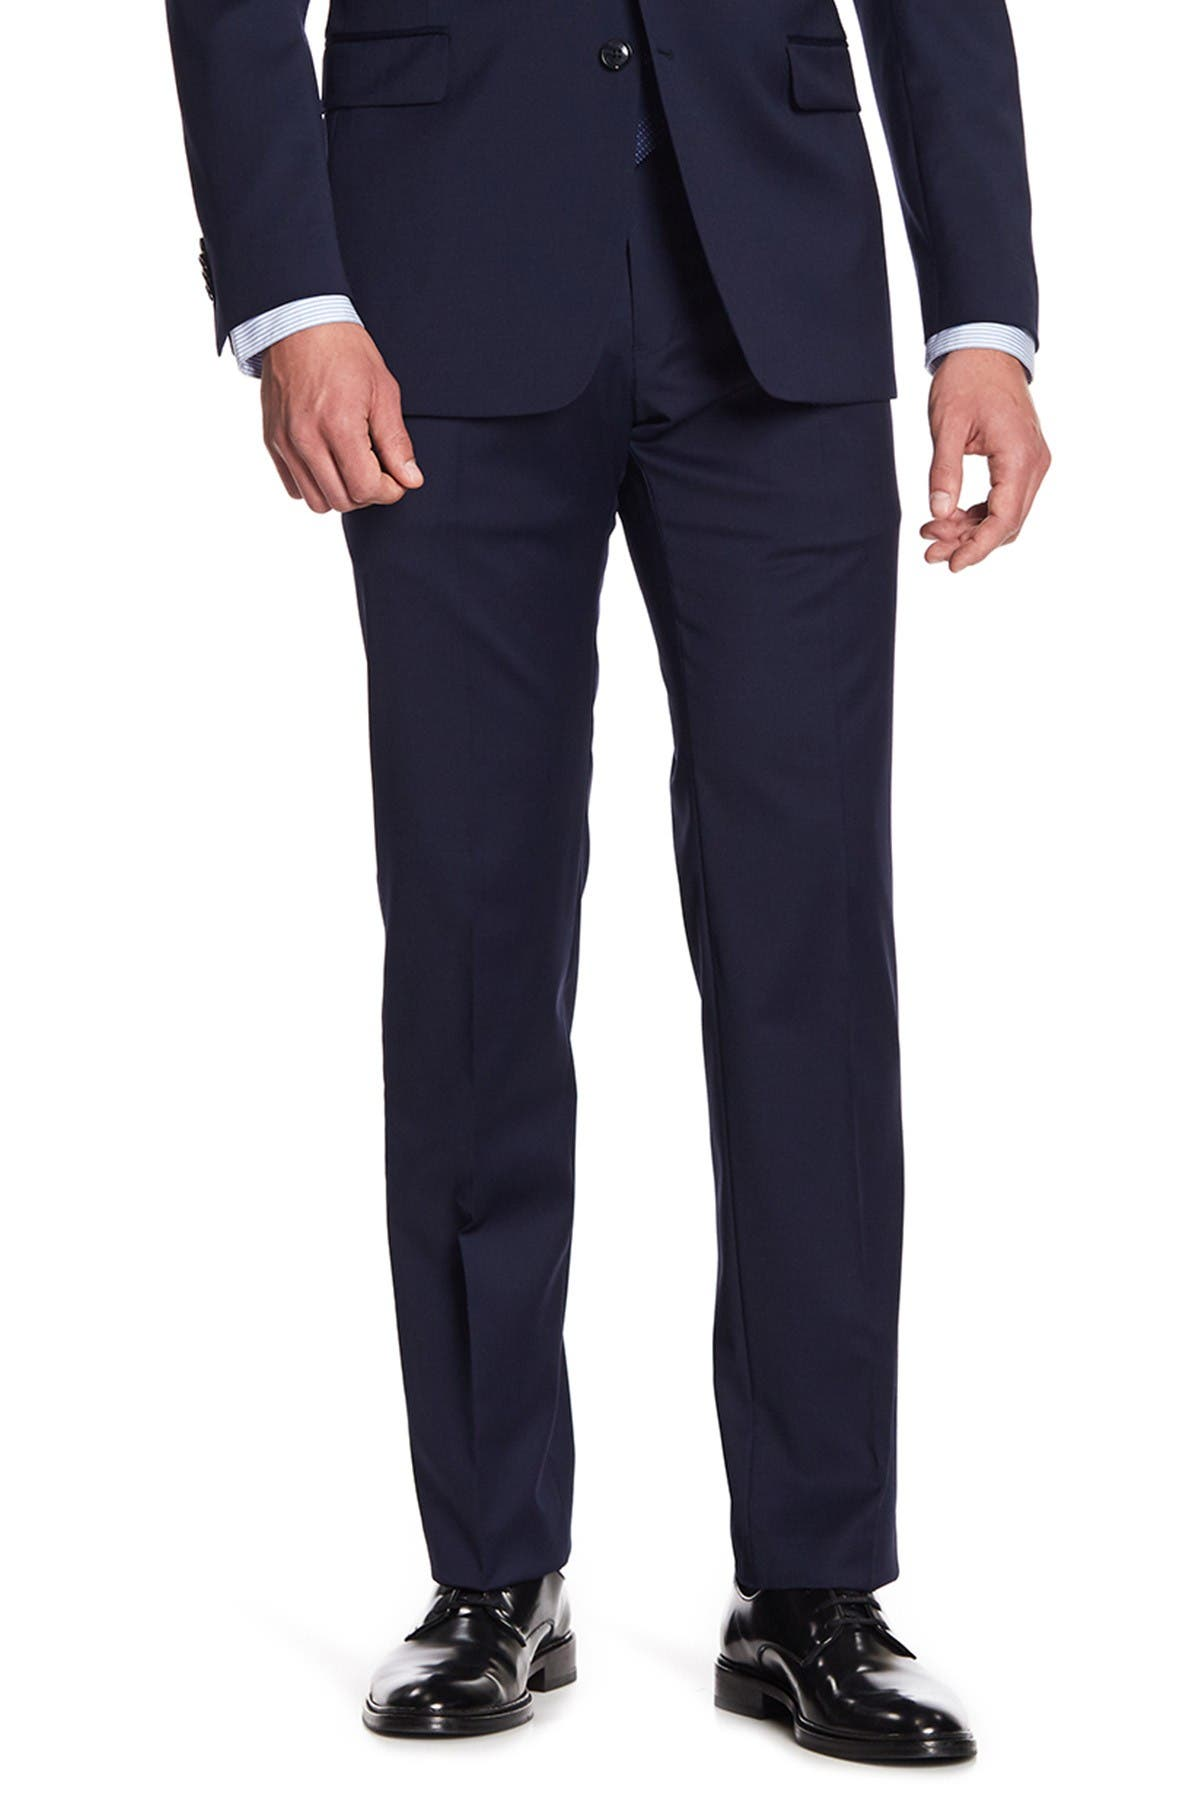 """Image of Tommy Hilfiger Tyler Modern Fit TH Flex Performance Suit Separates Pants - 29-34"""" Inseam"""